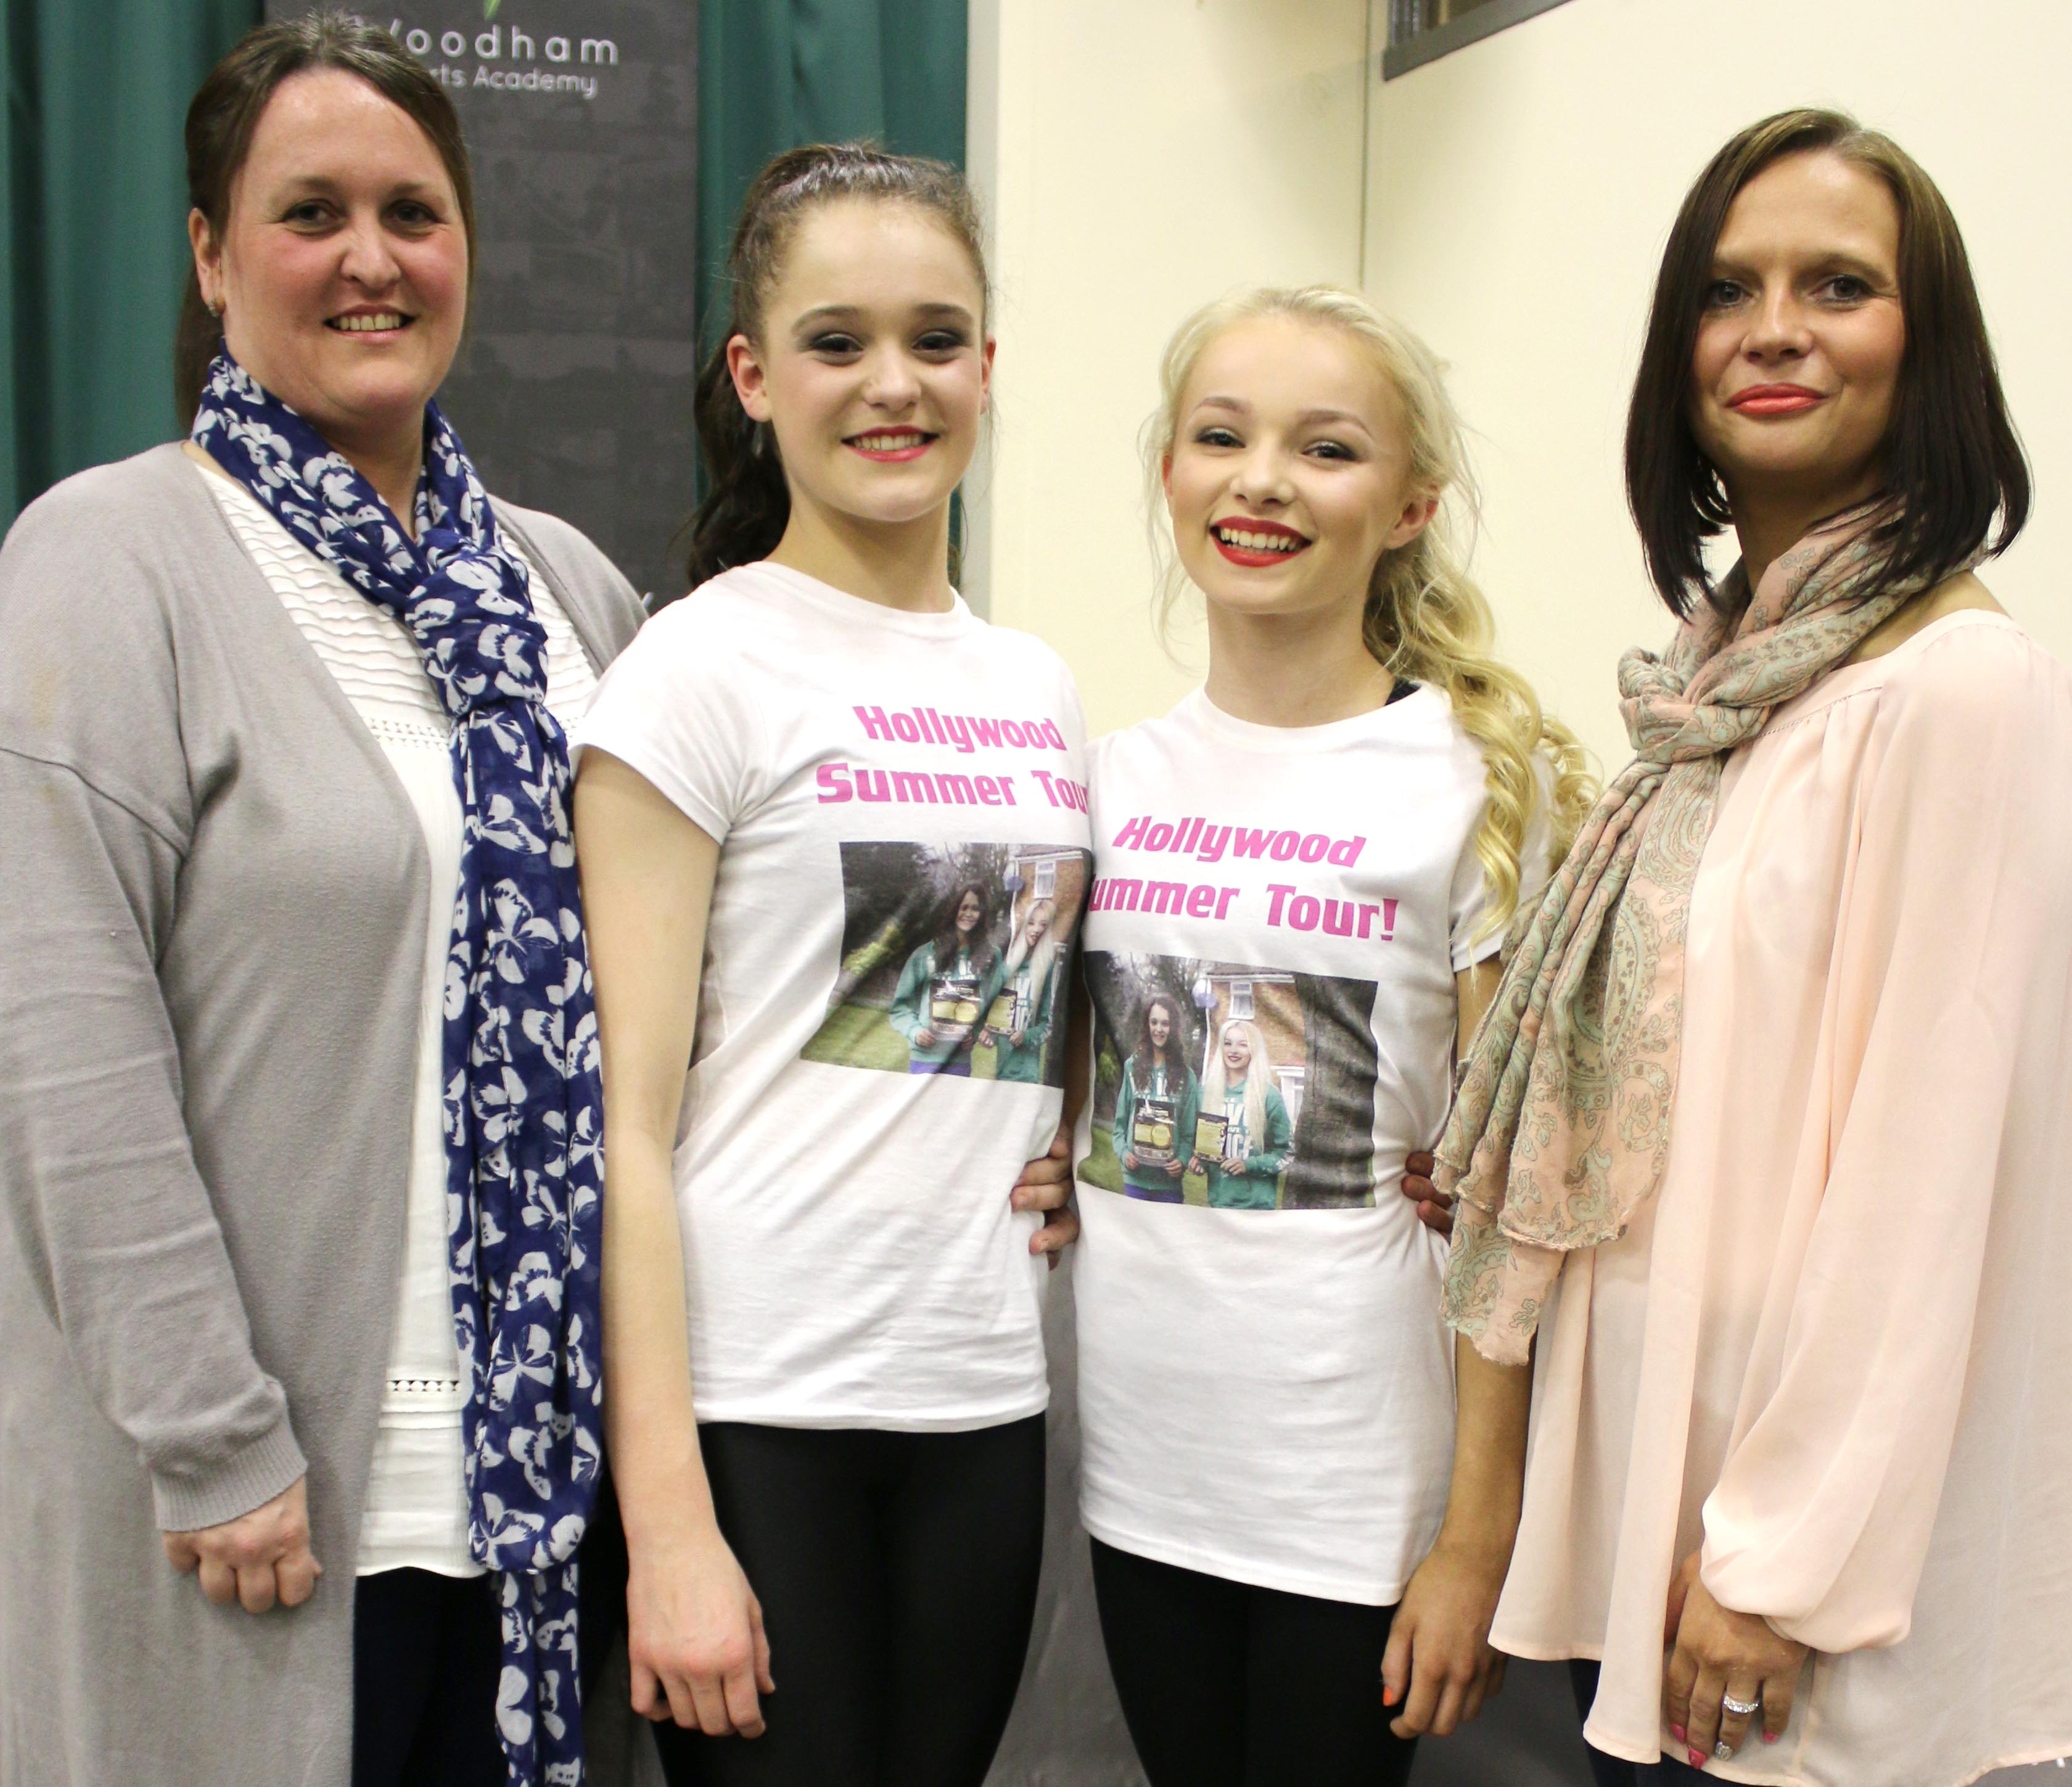 Dance Show Helps Two Students go to Hollywood